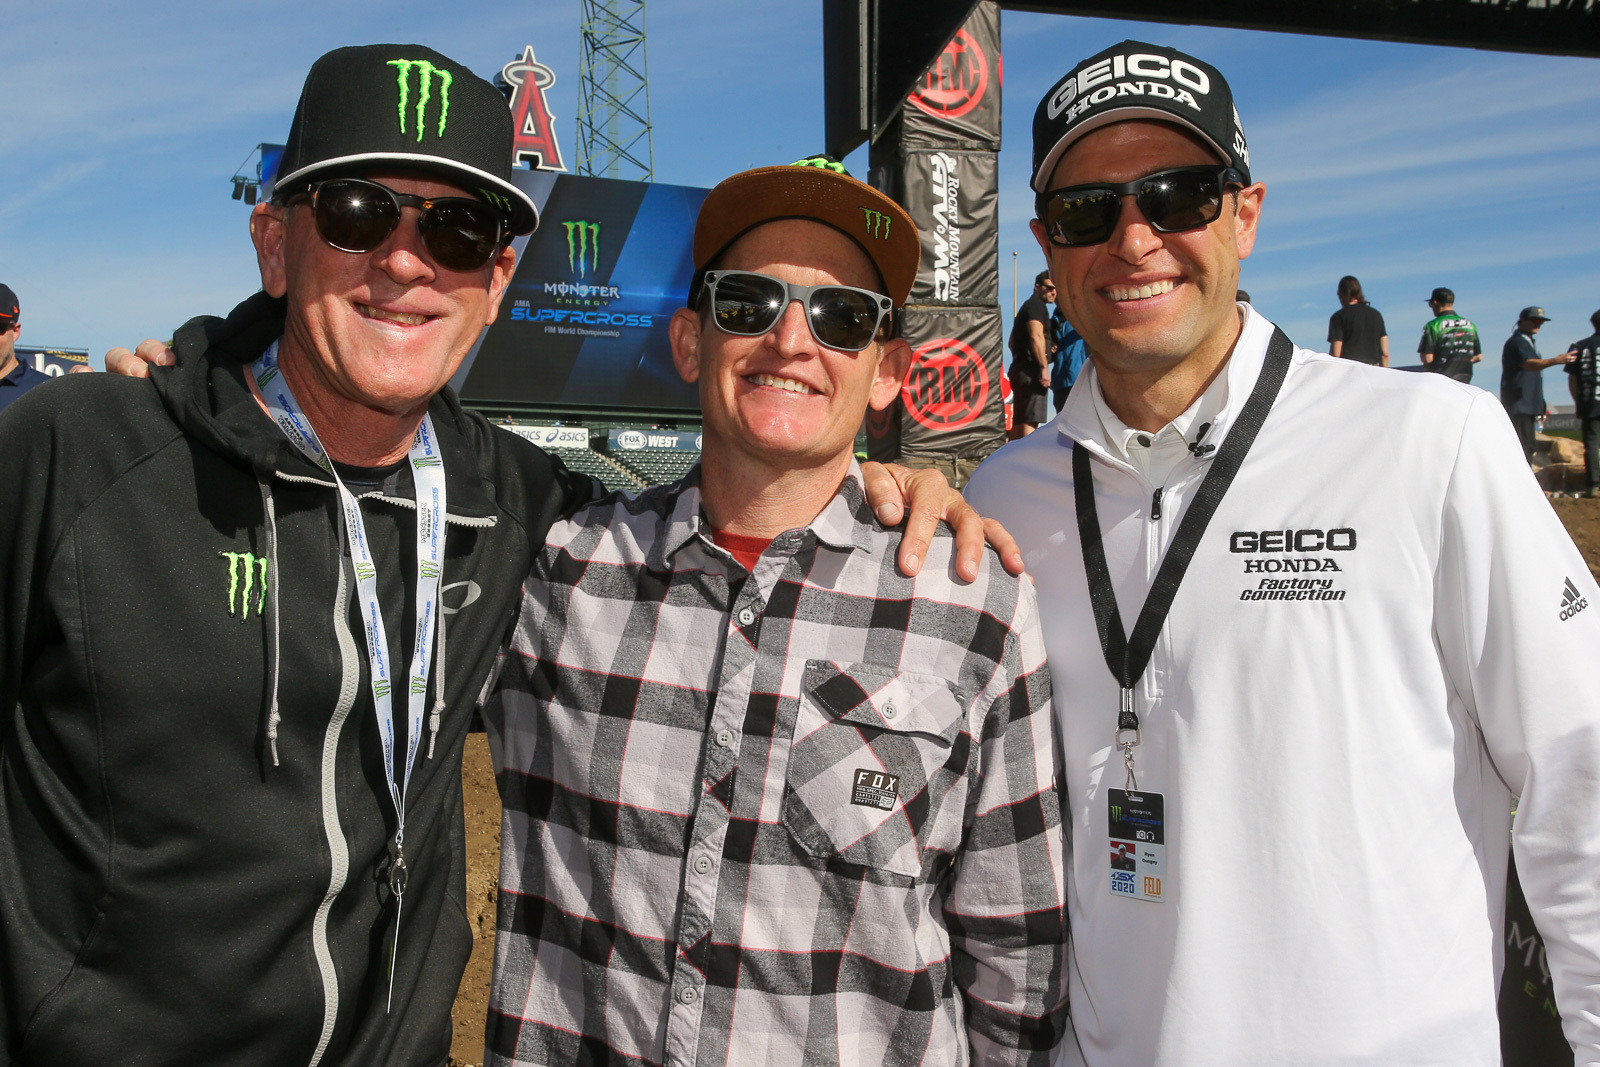 Whoa, who can tally up all the race wins and titles for these guys? We don't have enough fingers and toes. From left, that's Johnny Omara, Ricky Carmichael, and Ryan Dungey.